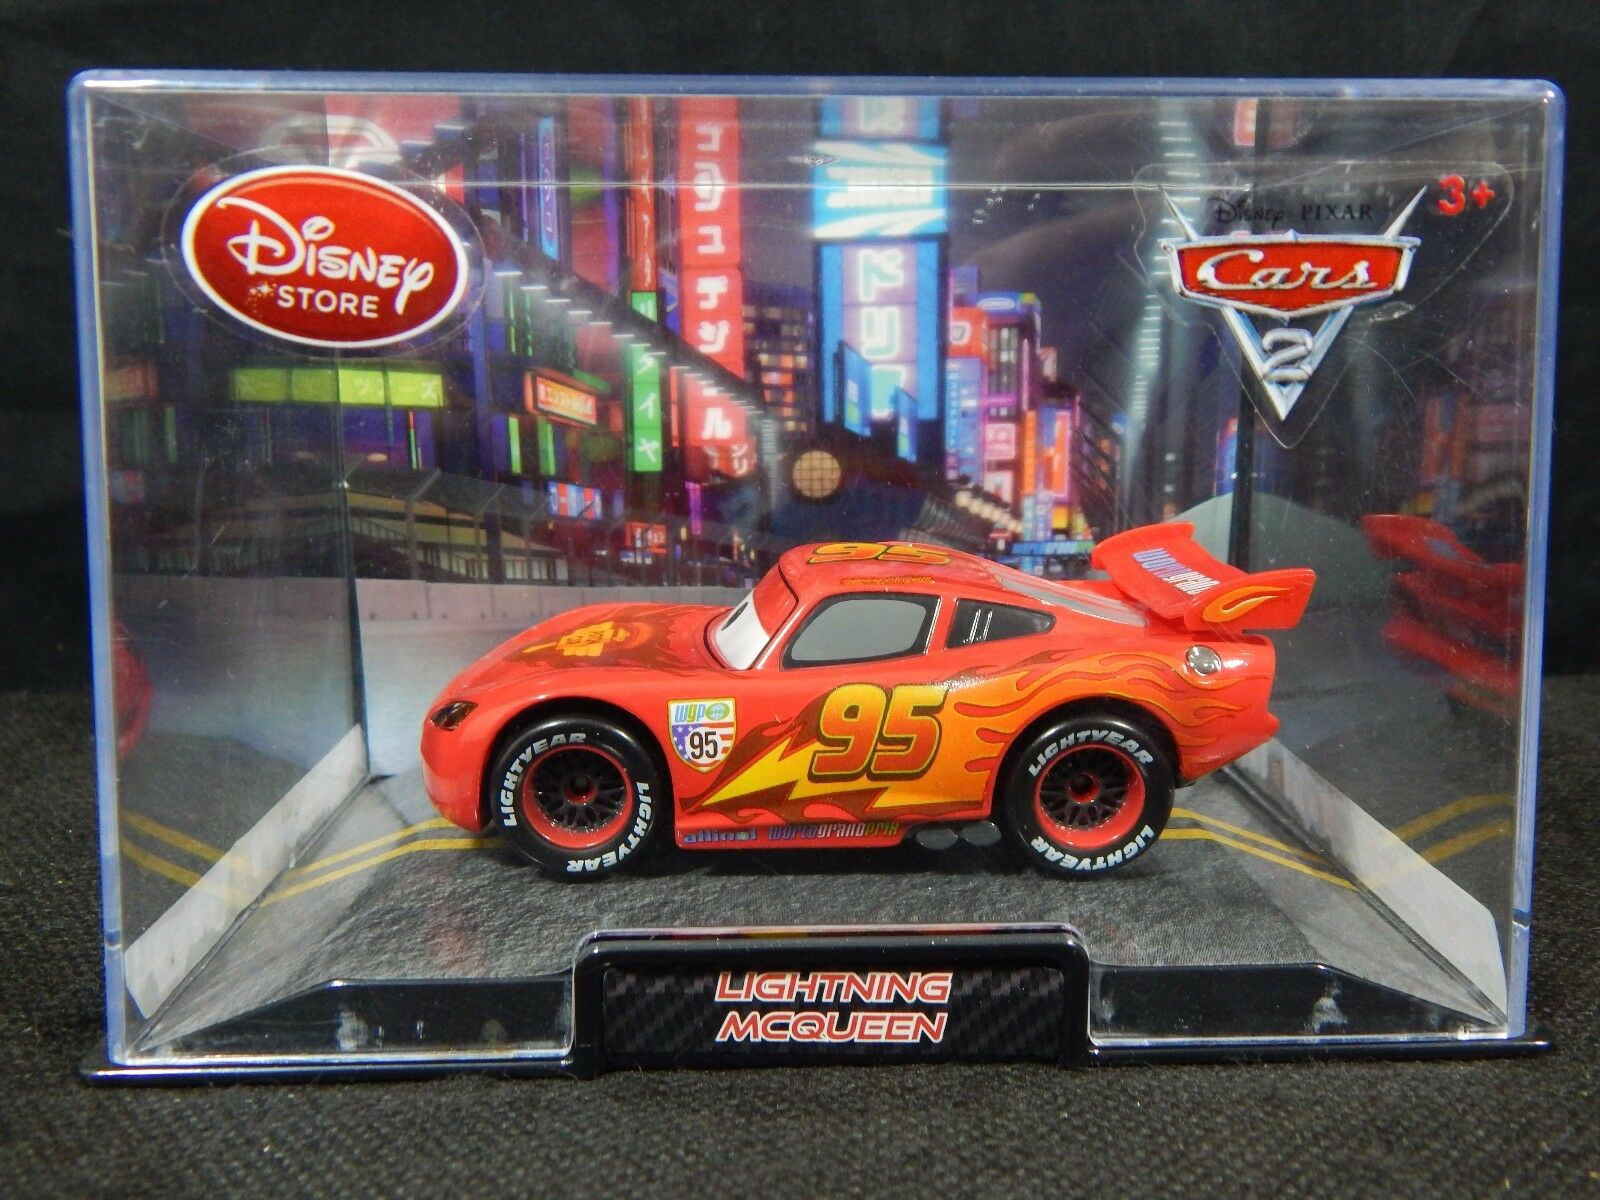 Disney Pixar Cars 2 Lightning McQueen Collector Car Vehicles | eBay